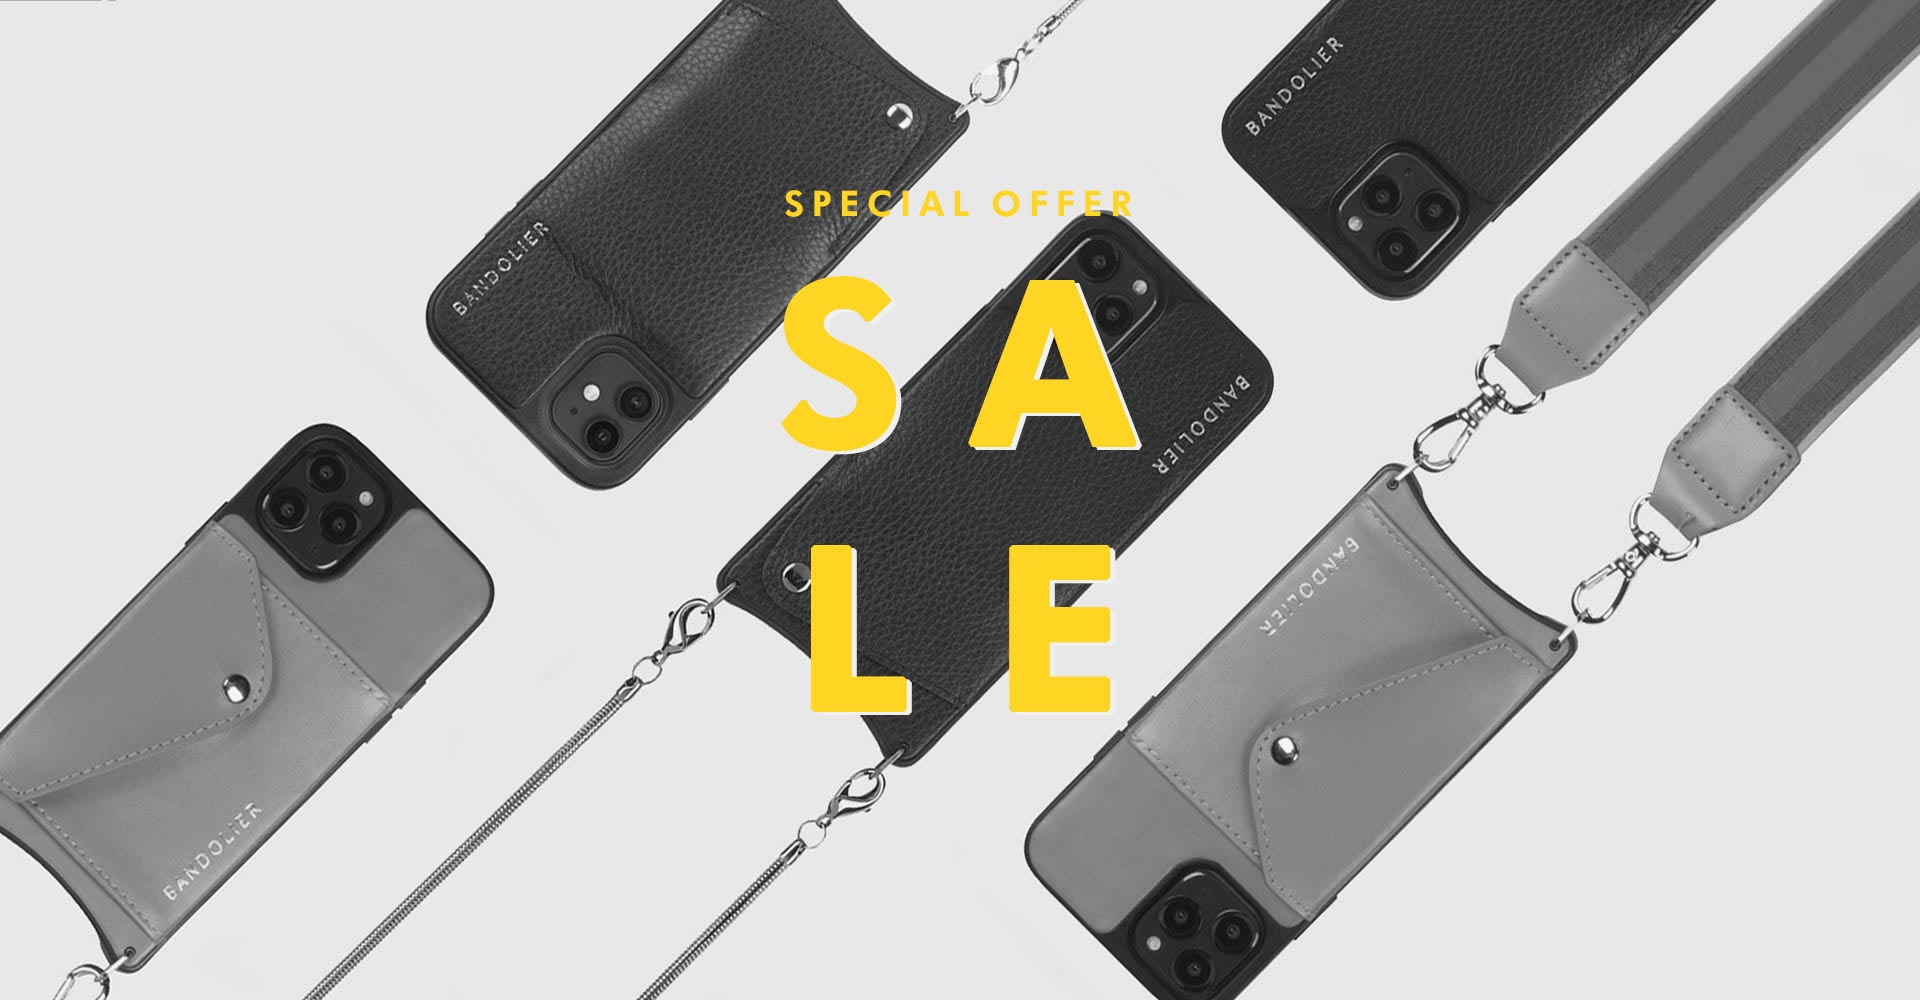 2021 SPECIAL OFFER SALE